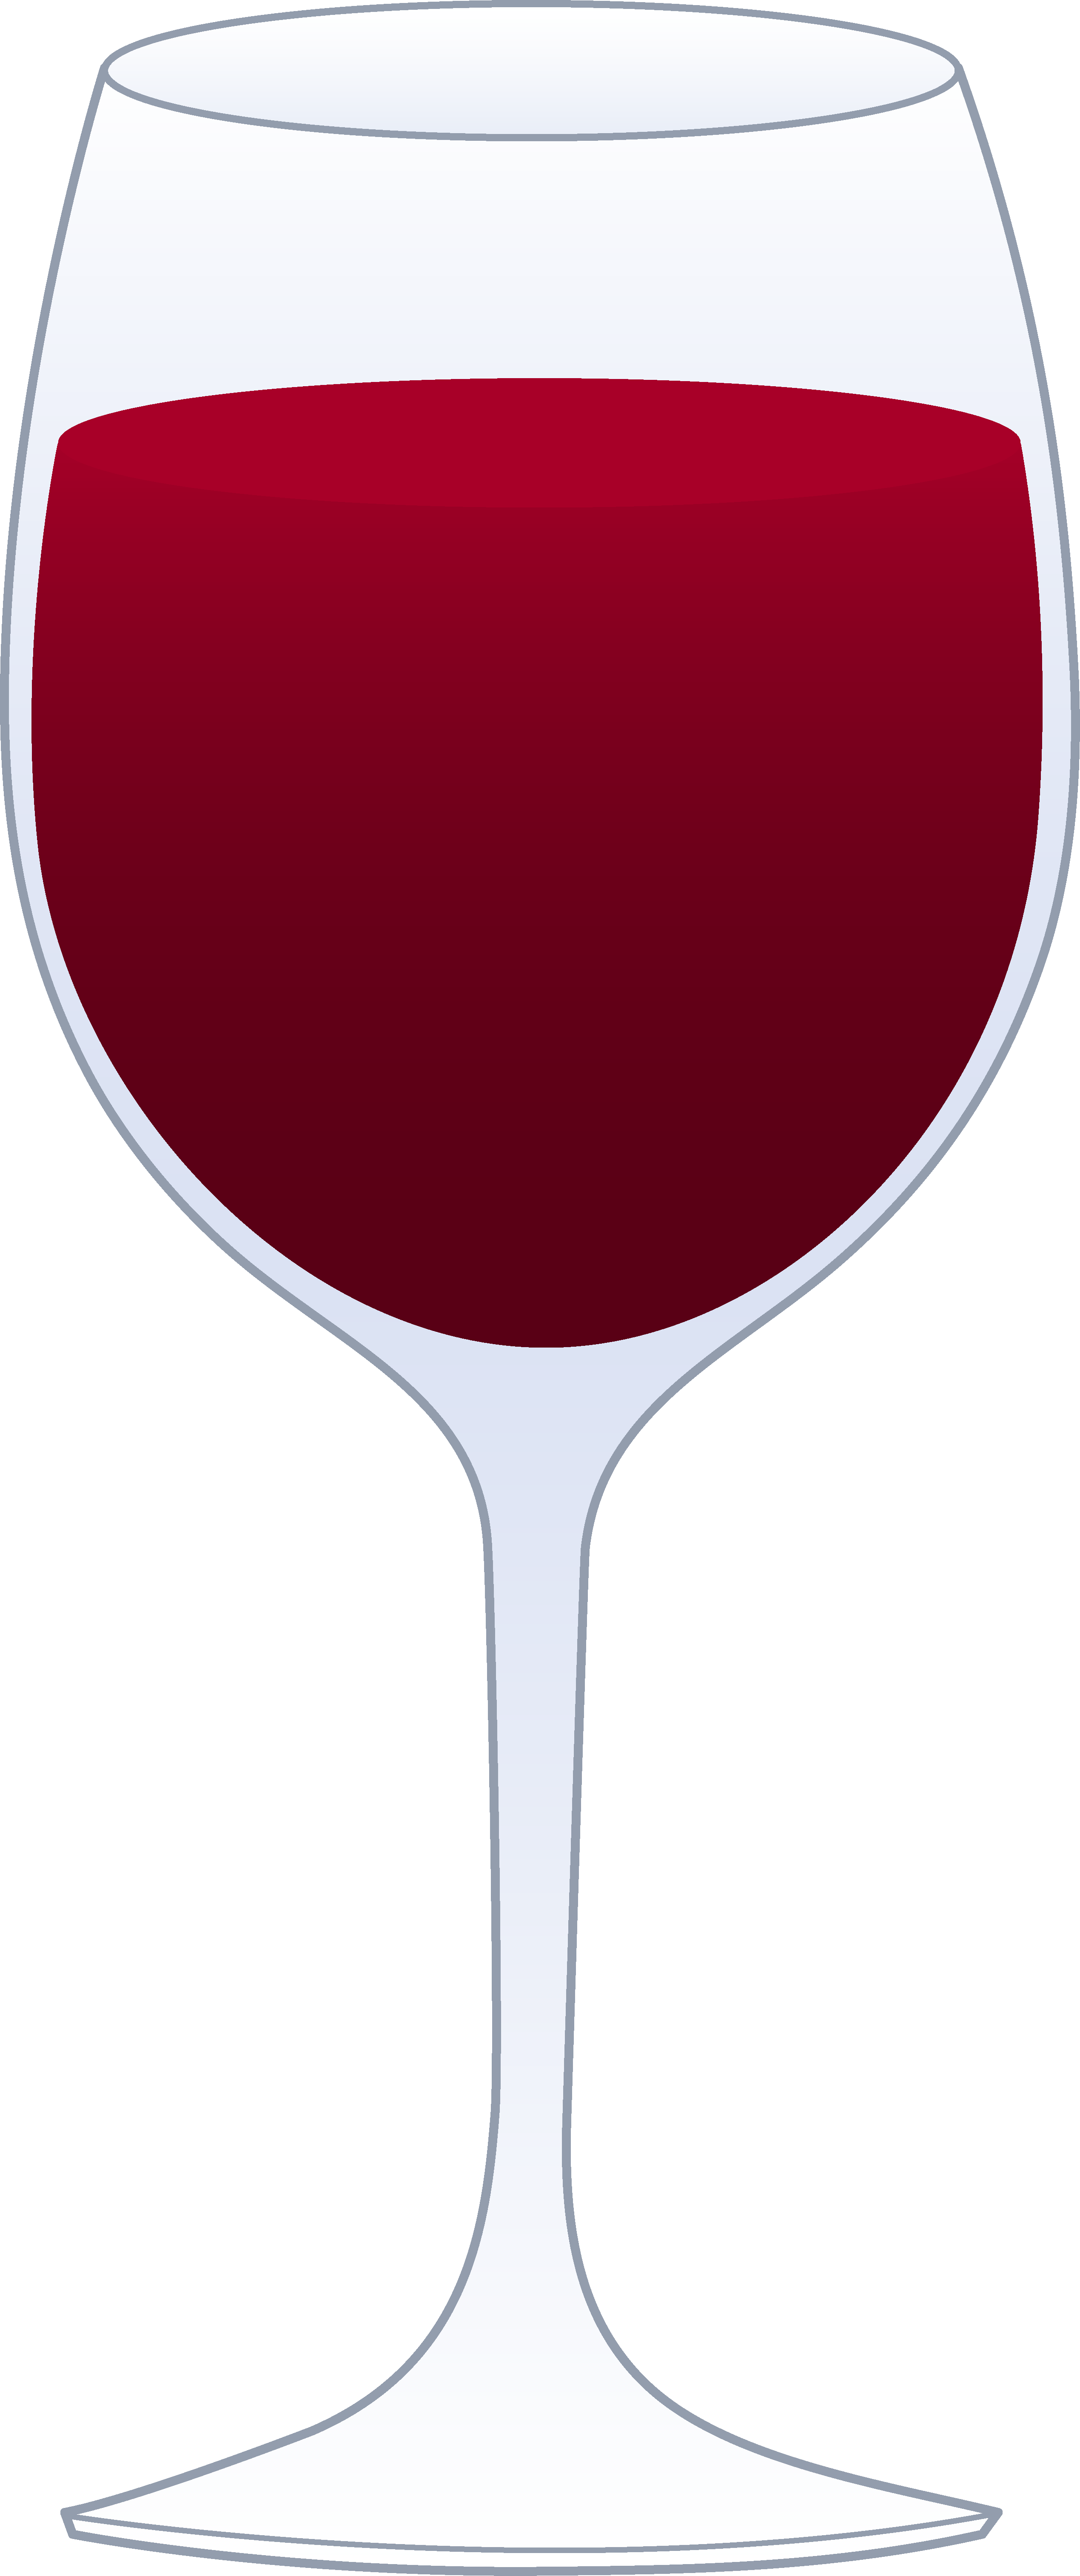 2539x6056 Glass Of Red Wine